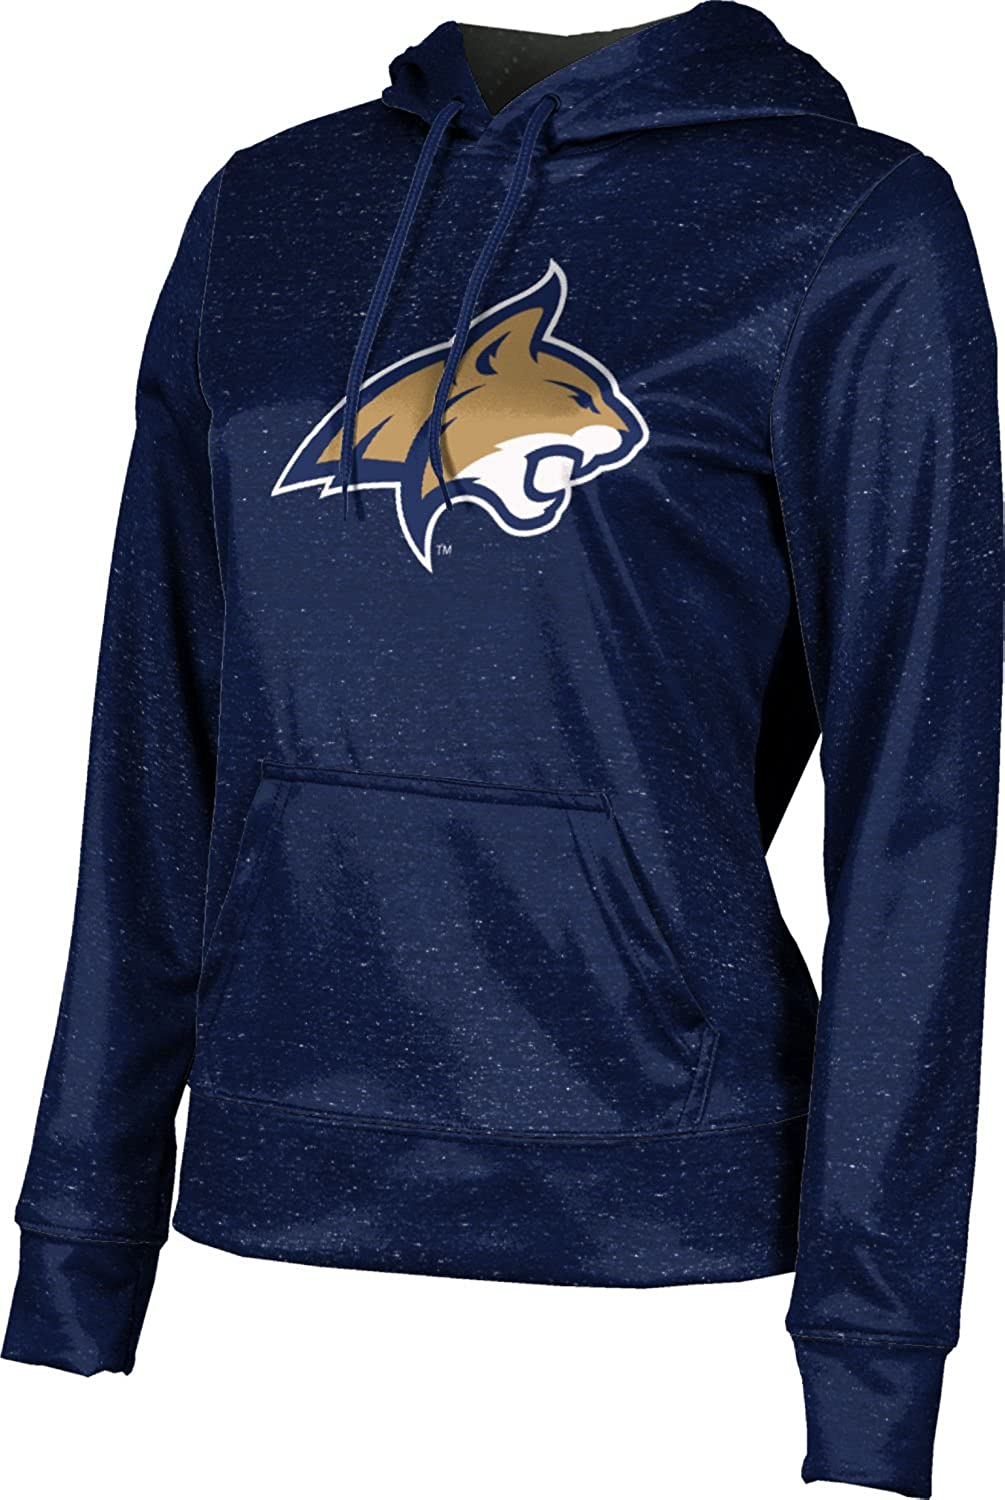 ProSphere Montana State University Girls' Hoodie Sweatshirt - Heather